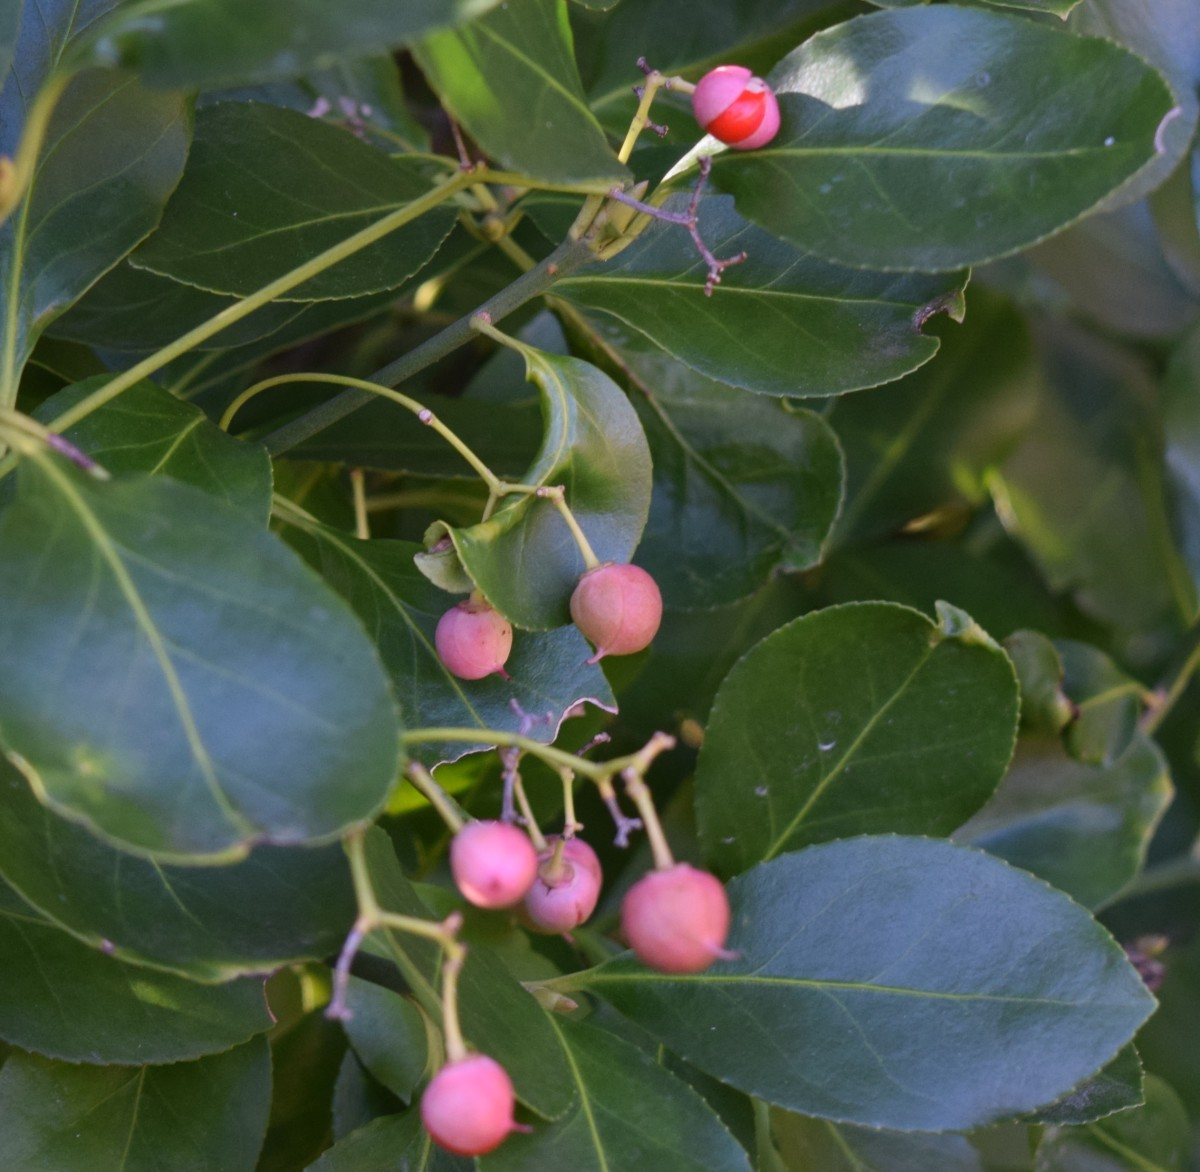 9 Reasons to Use Evergreen Shrubs in Your Garden